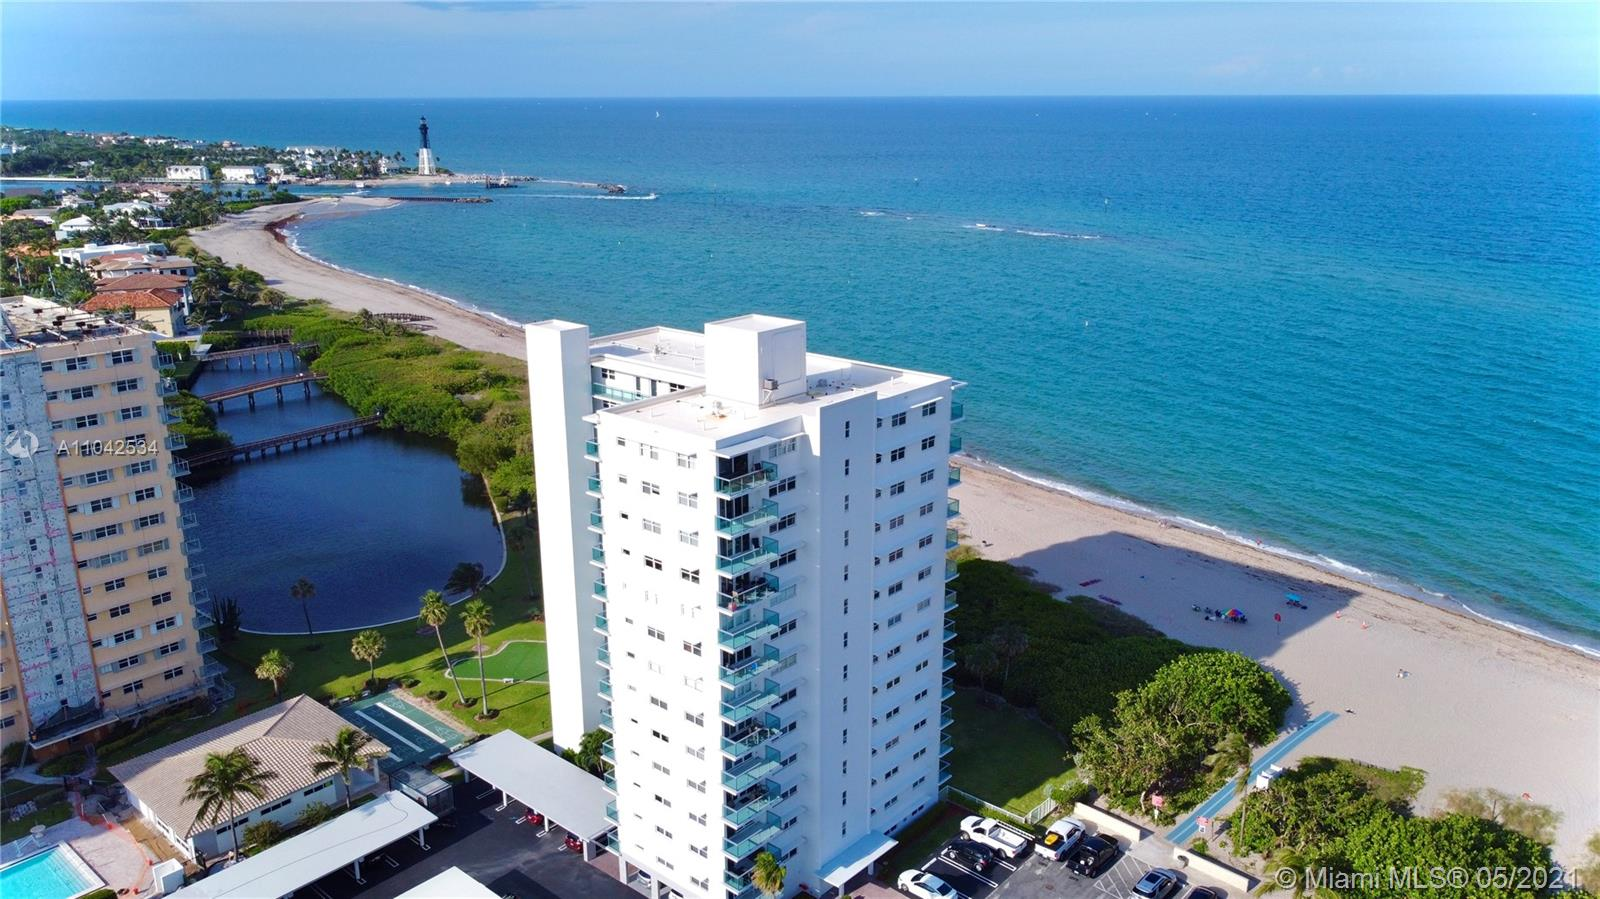 Spectacular direct unobstructed ocean view from the moment you enter the unit. You can see the ocean, the lighthouse, the beach & the garden! The property has been completely upgraded (2021) & move in ready. The building has undergone major renovations within the last year including brand new balconies with glass panels. New roof installation coming soon. New paint & waterproofing, redone catwalks & common areas . The kitchen has been opened to afford maximum water view. Both baths have been upgraded and are very nice and modern. The master bedroom has direct ocean view. The master bath has a deep soaking bath tub and a linen closet. The unit has impact glass and there is 1 assigned covered parking space. The building is direct ocean front, come off the elevator and walk to the beach!